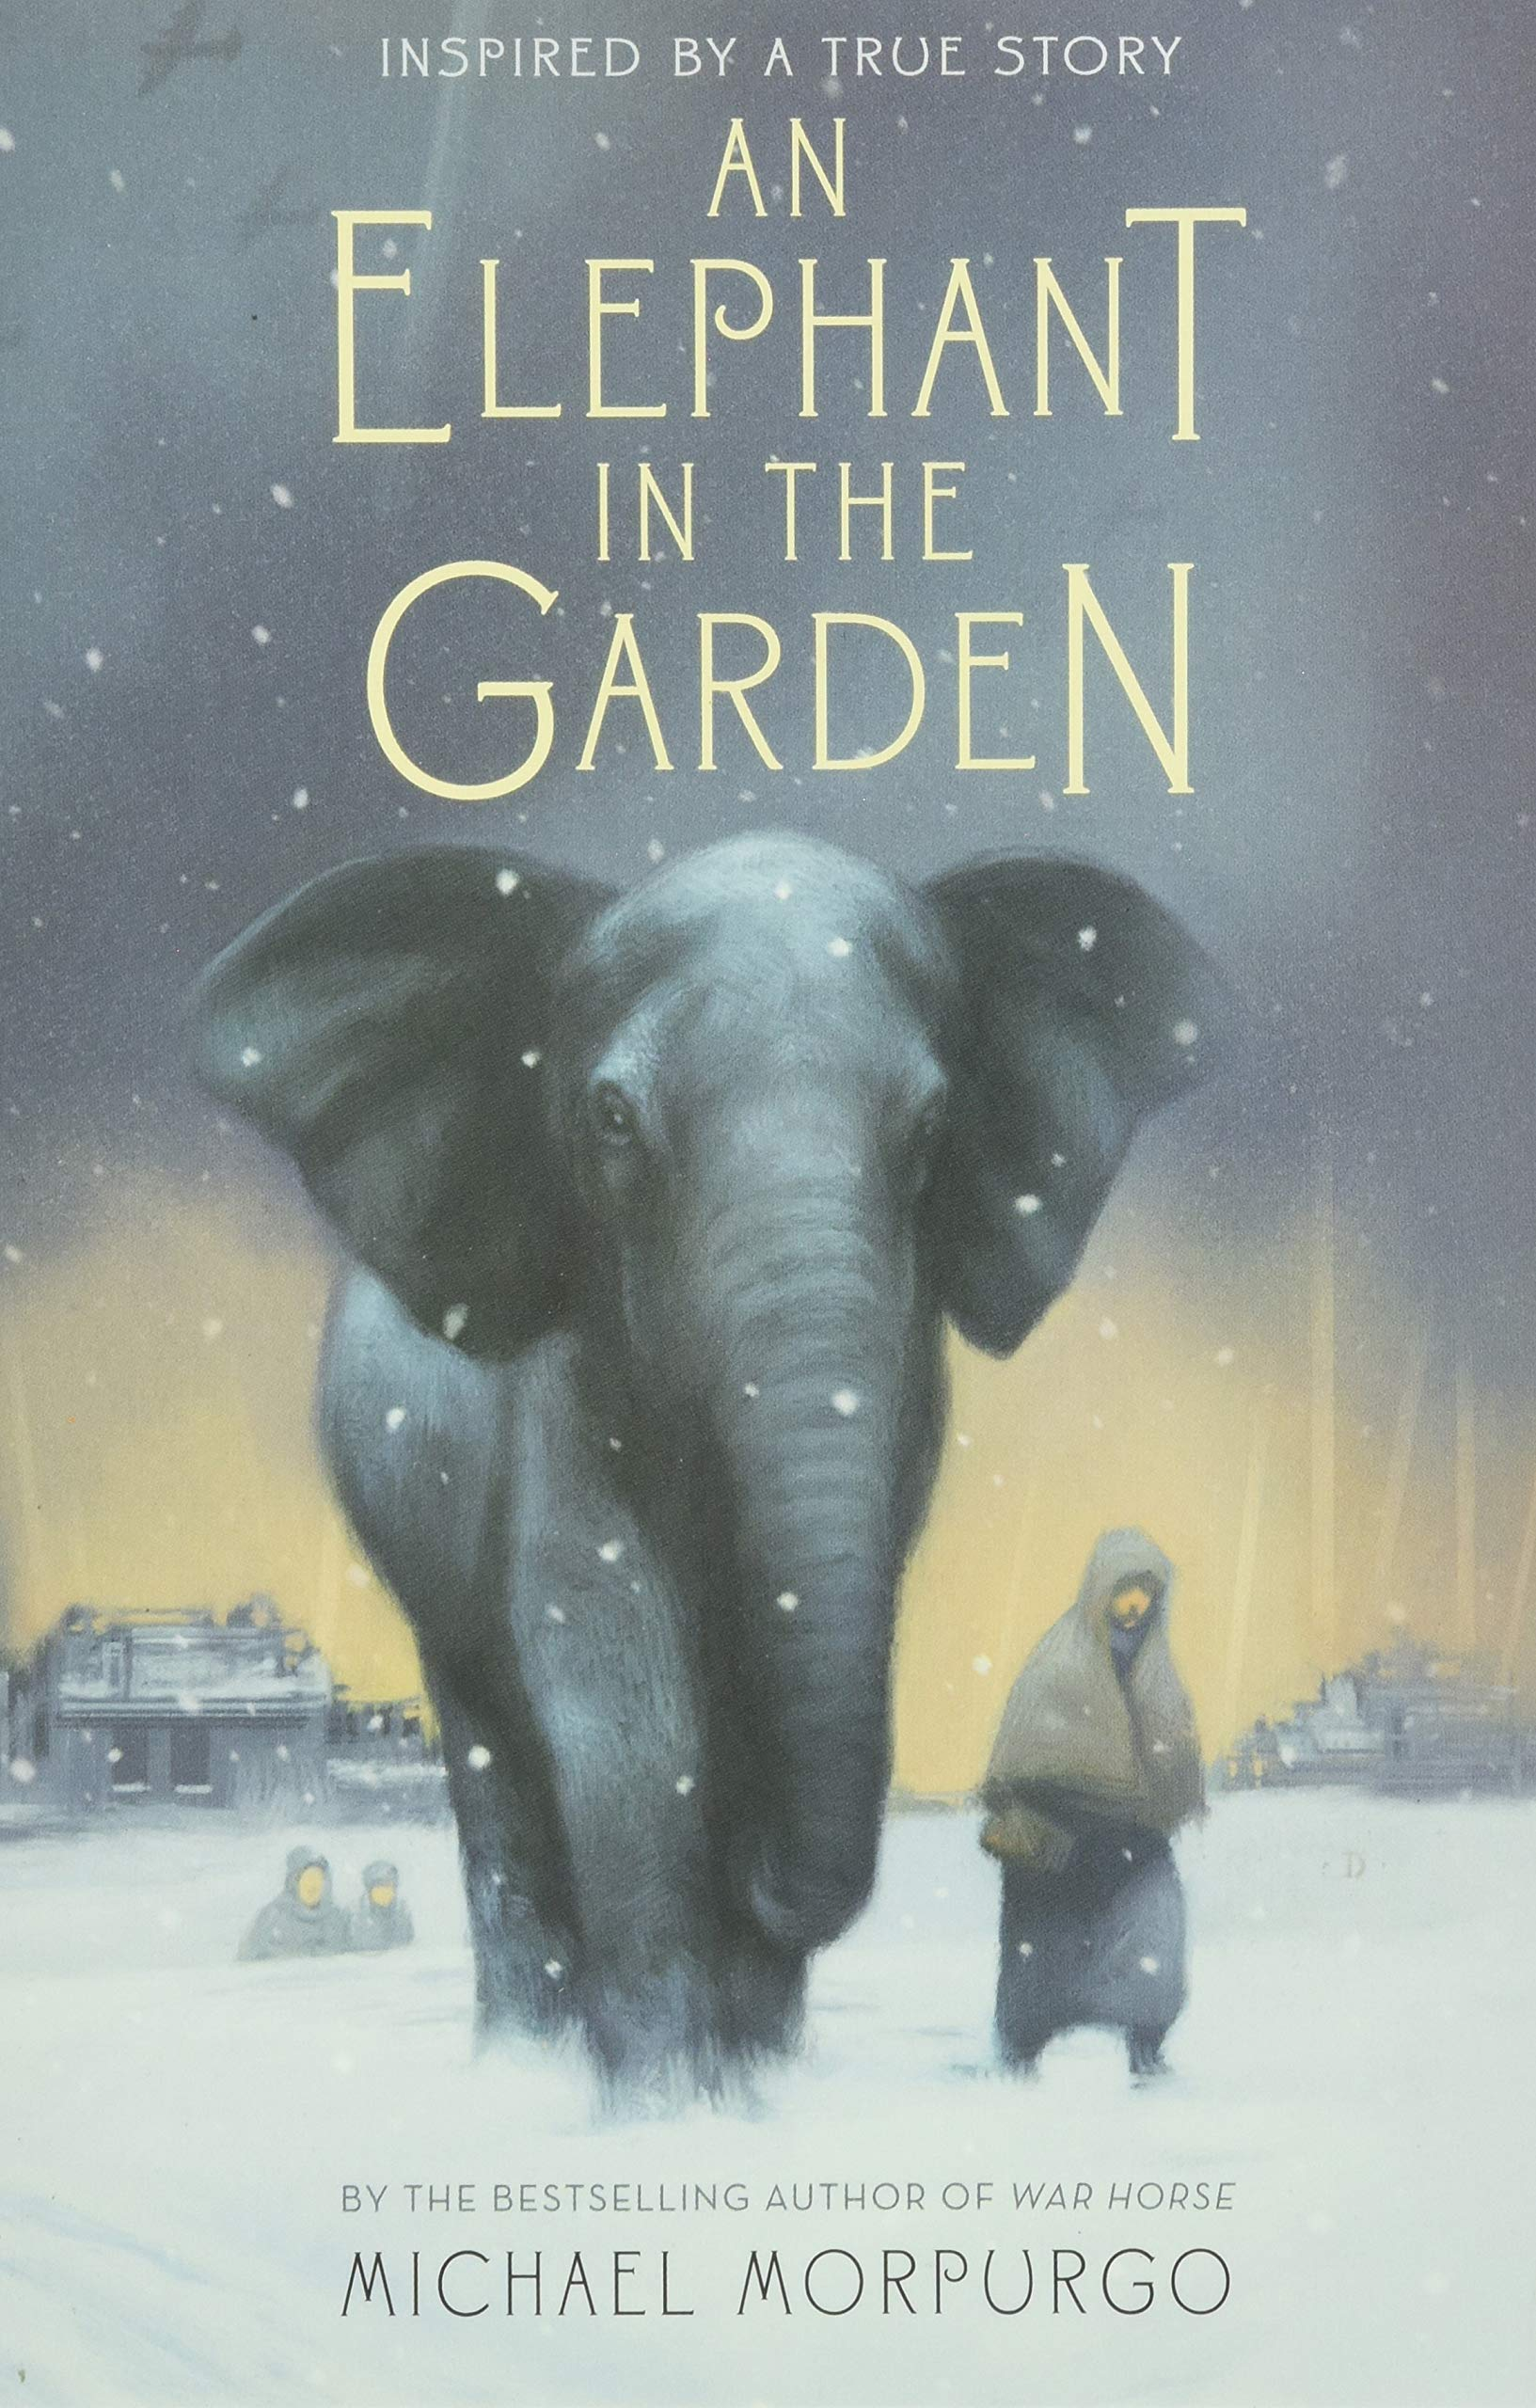 An Elephant in the Garden: Inspired by a True Story